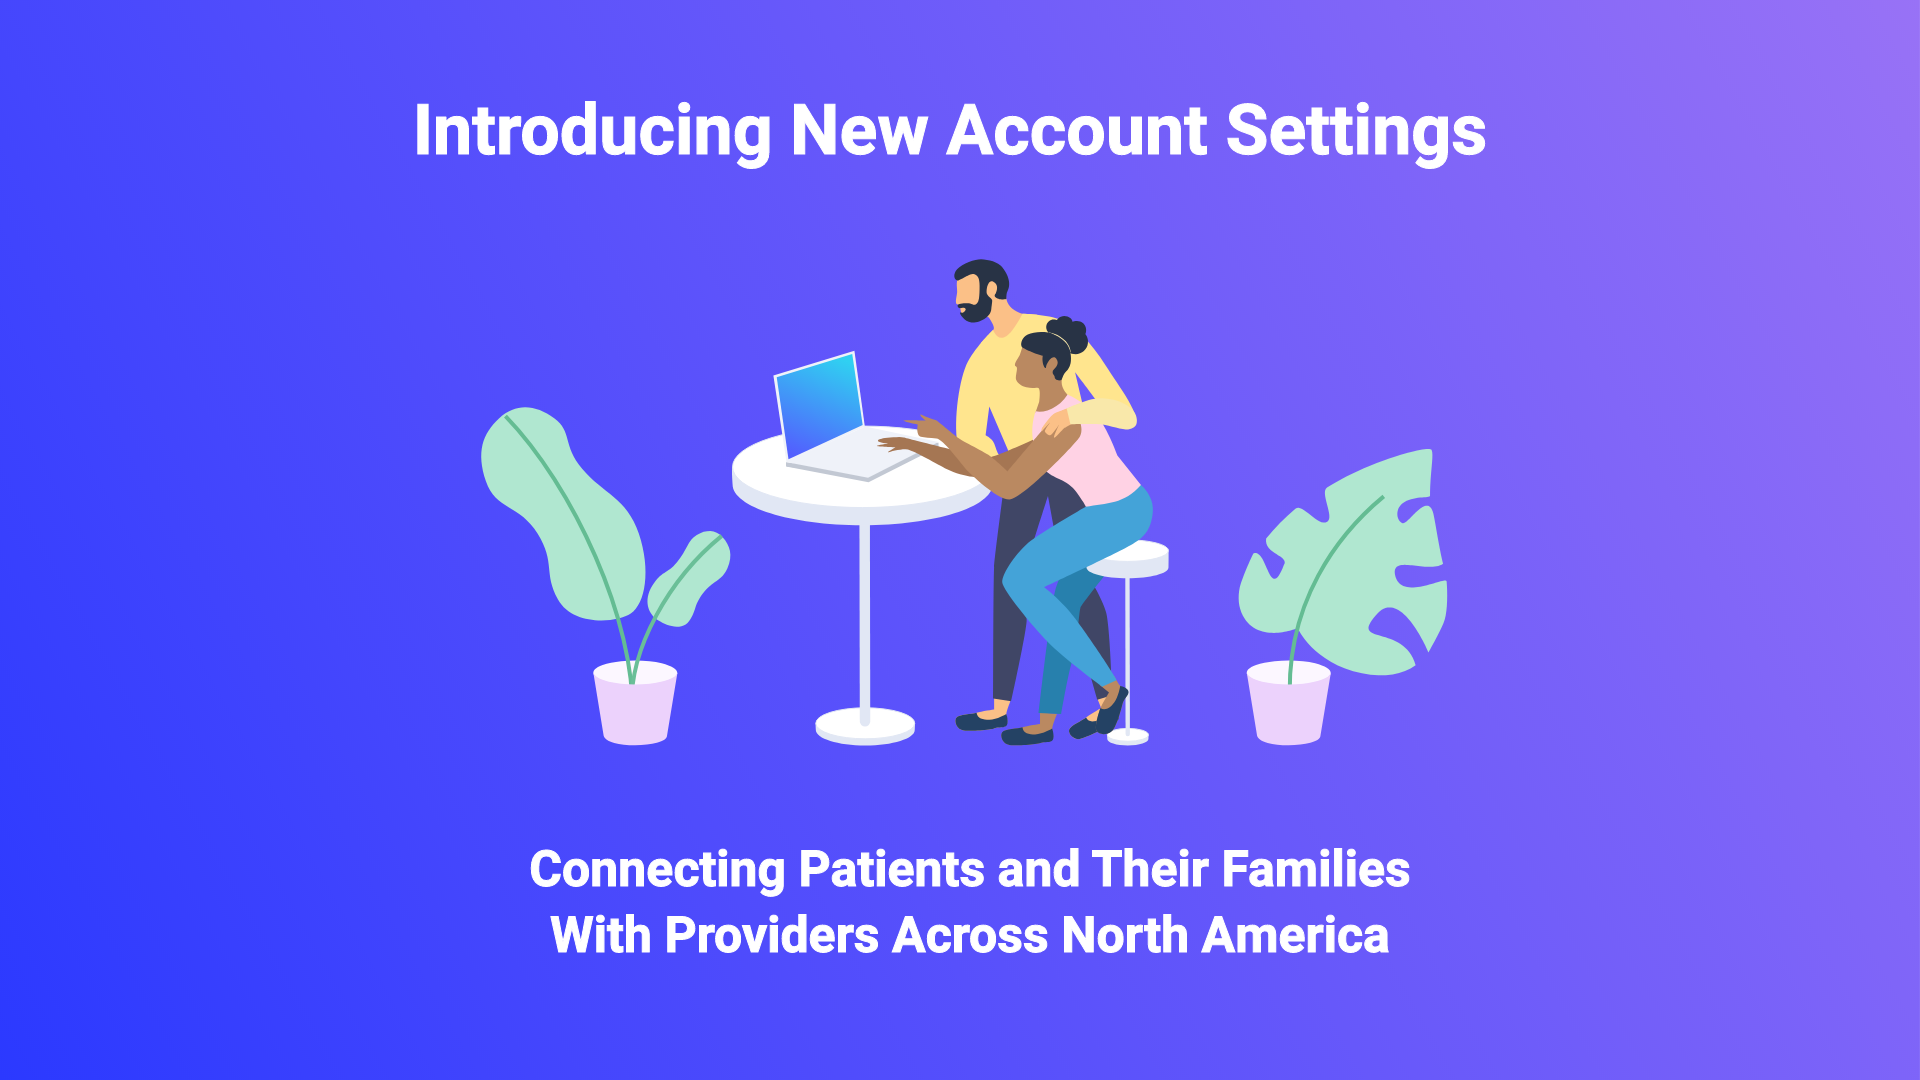 Patients Now Have New Account Settings!